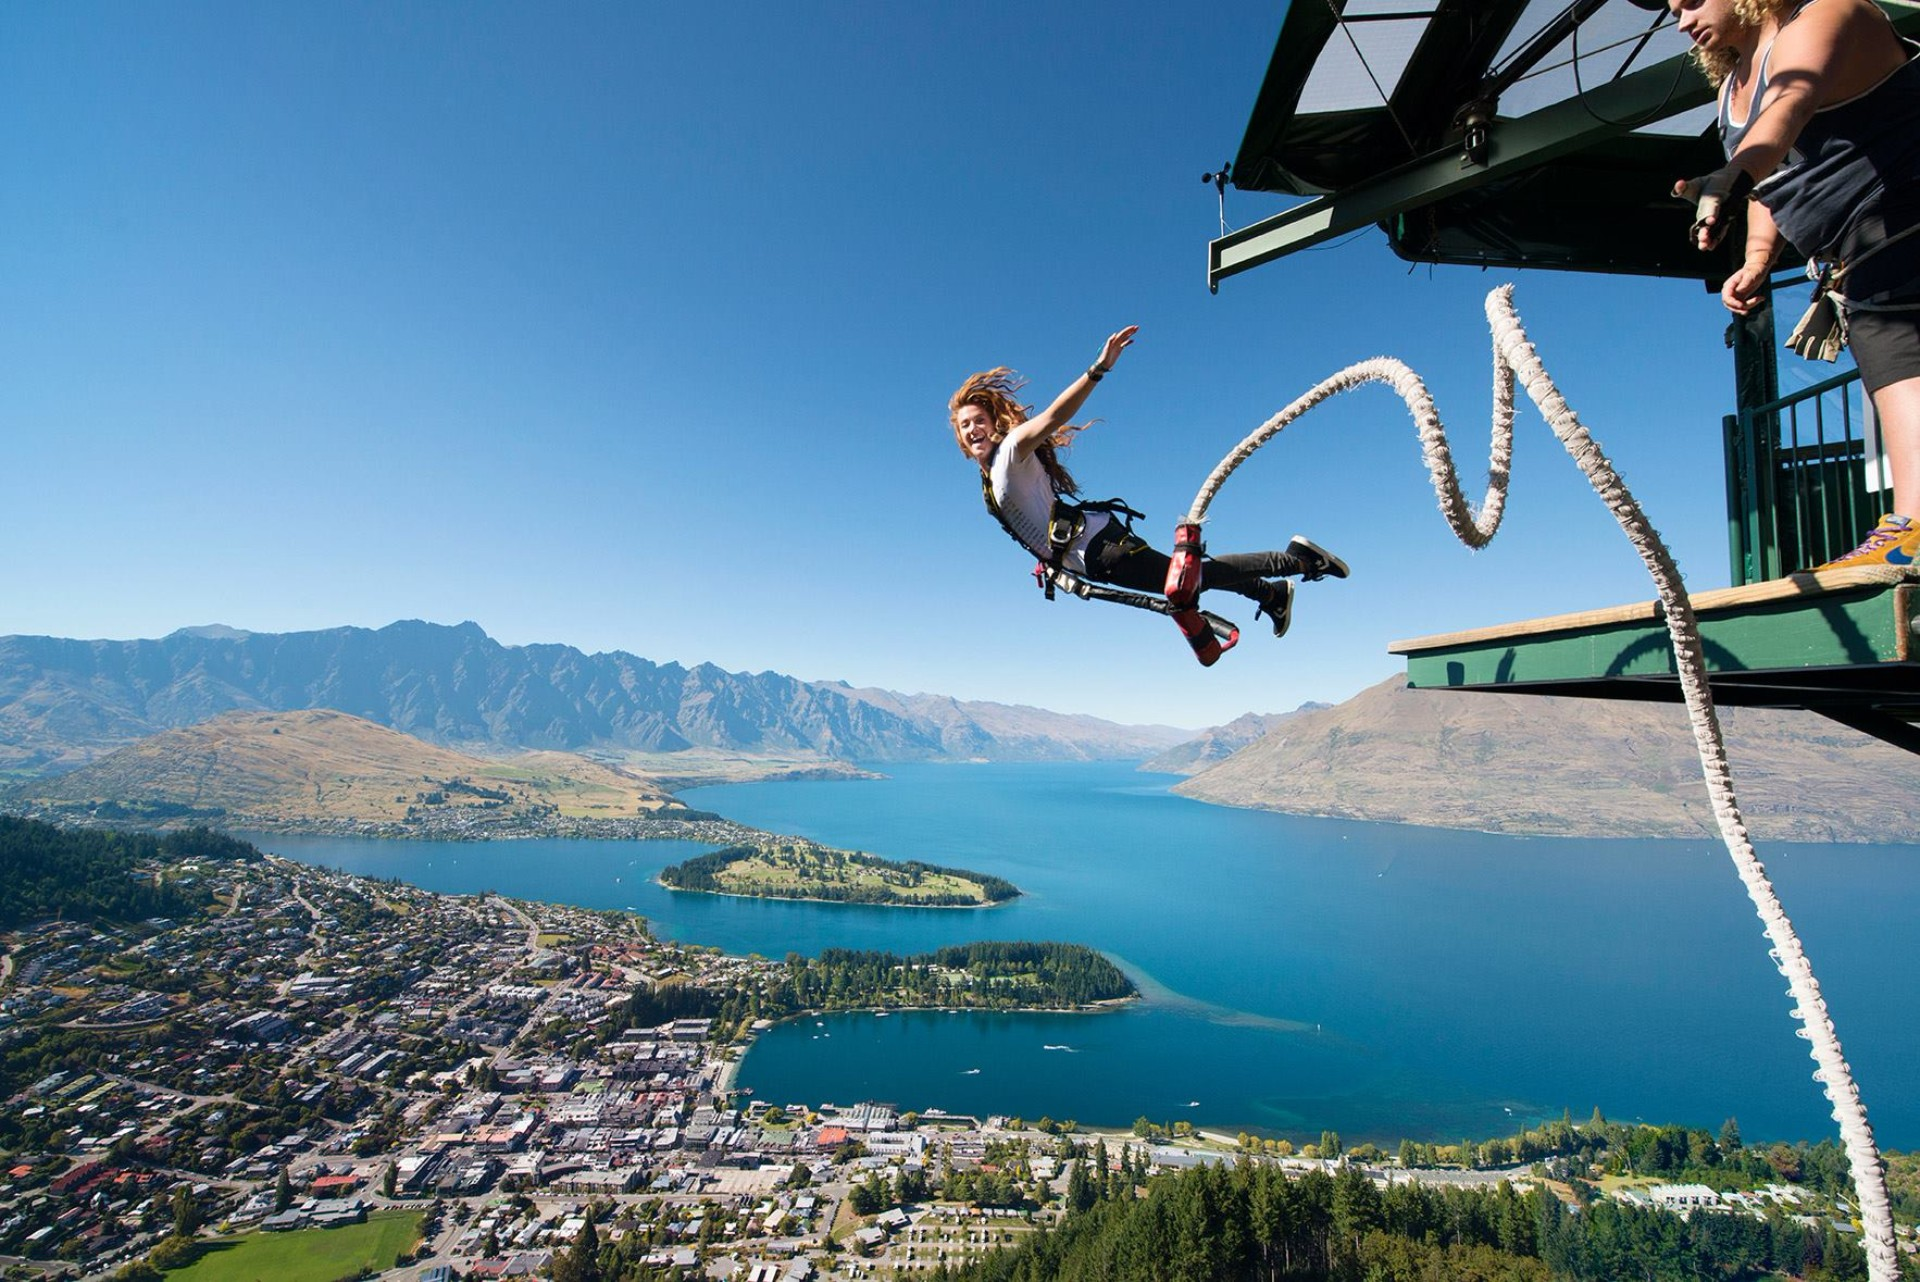 Queenstown AJ Hackett Ledge Bungy Jump The Ultimate New Zealand Bucket List Faraway Lucy Travel Blog